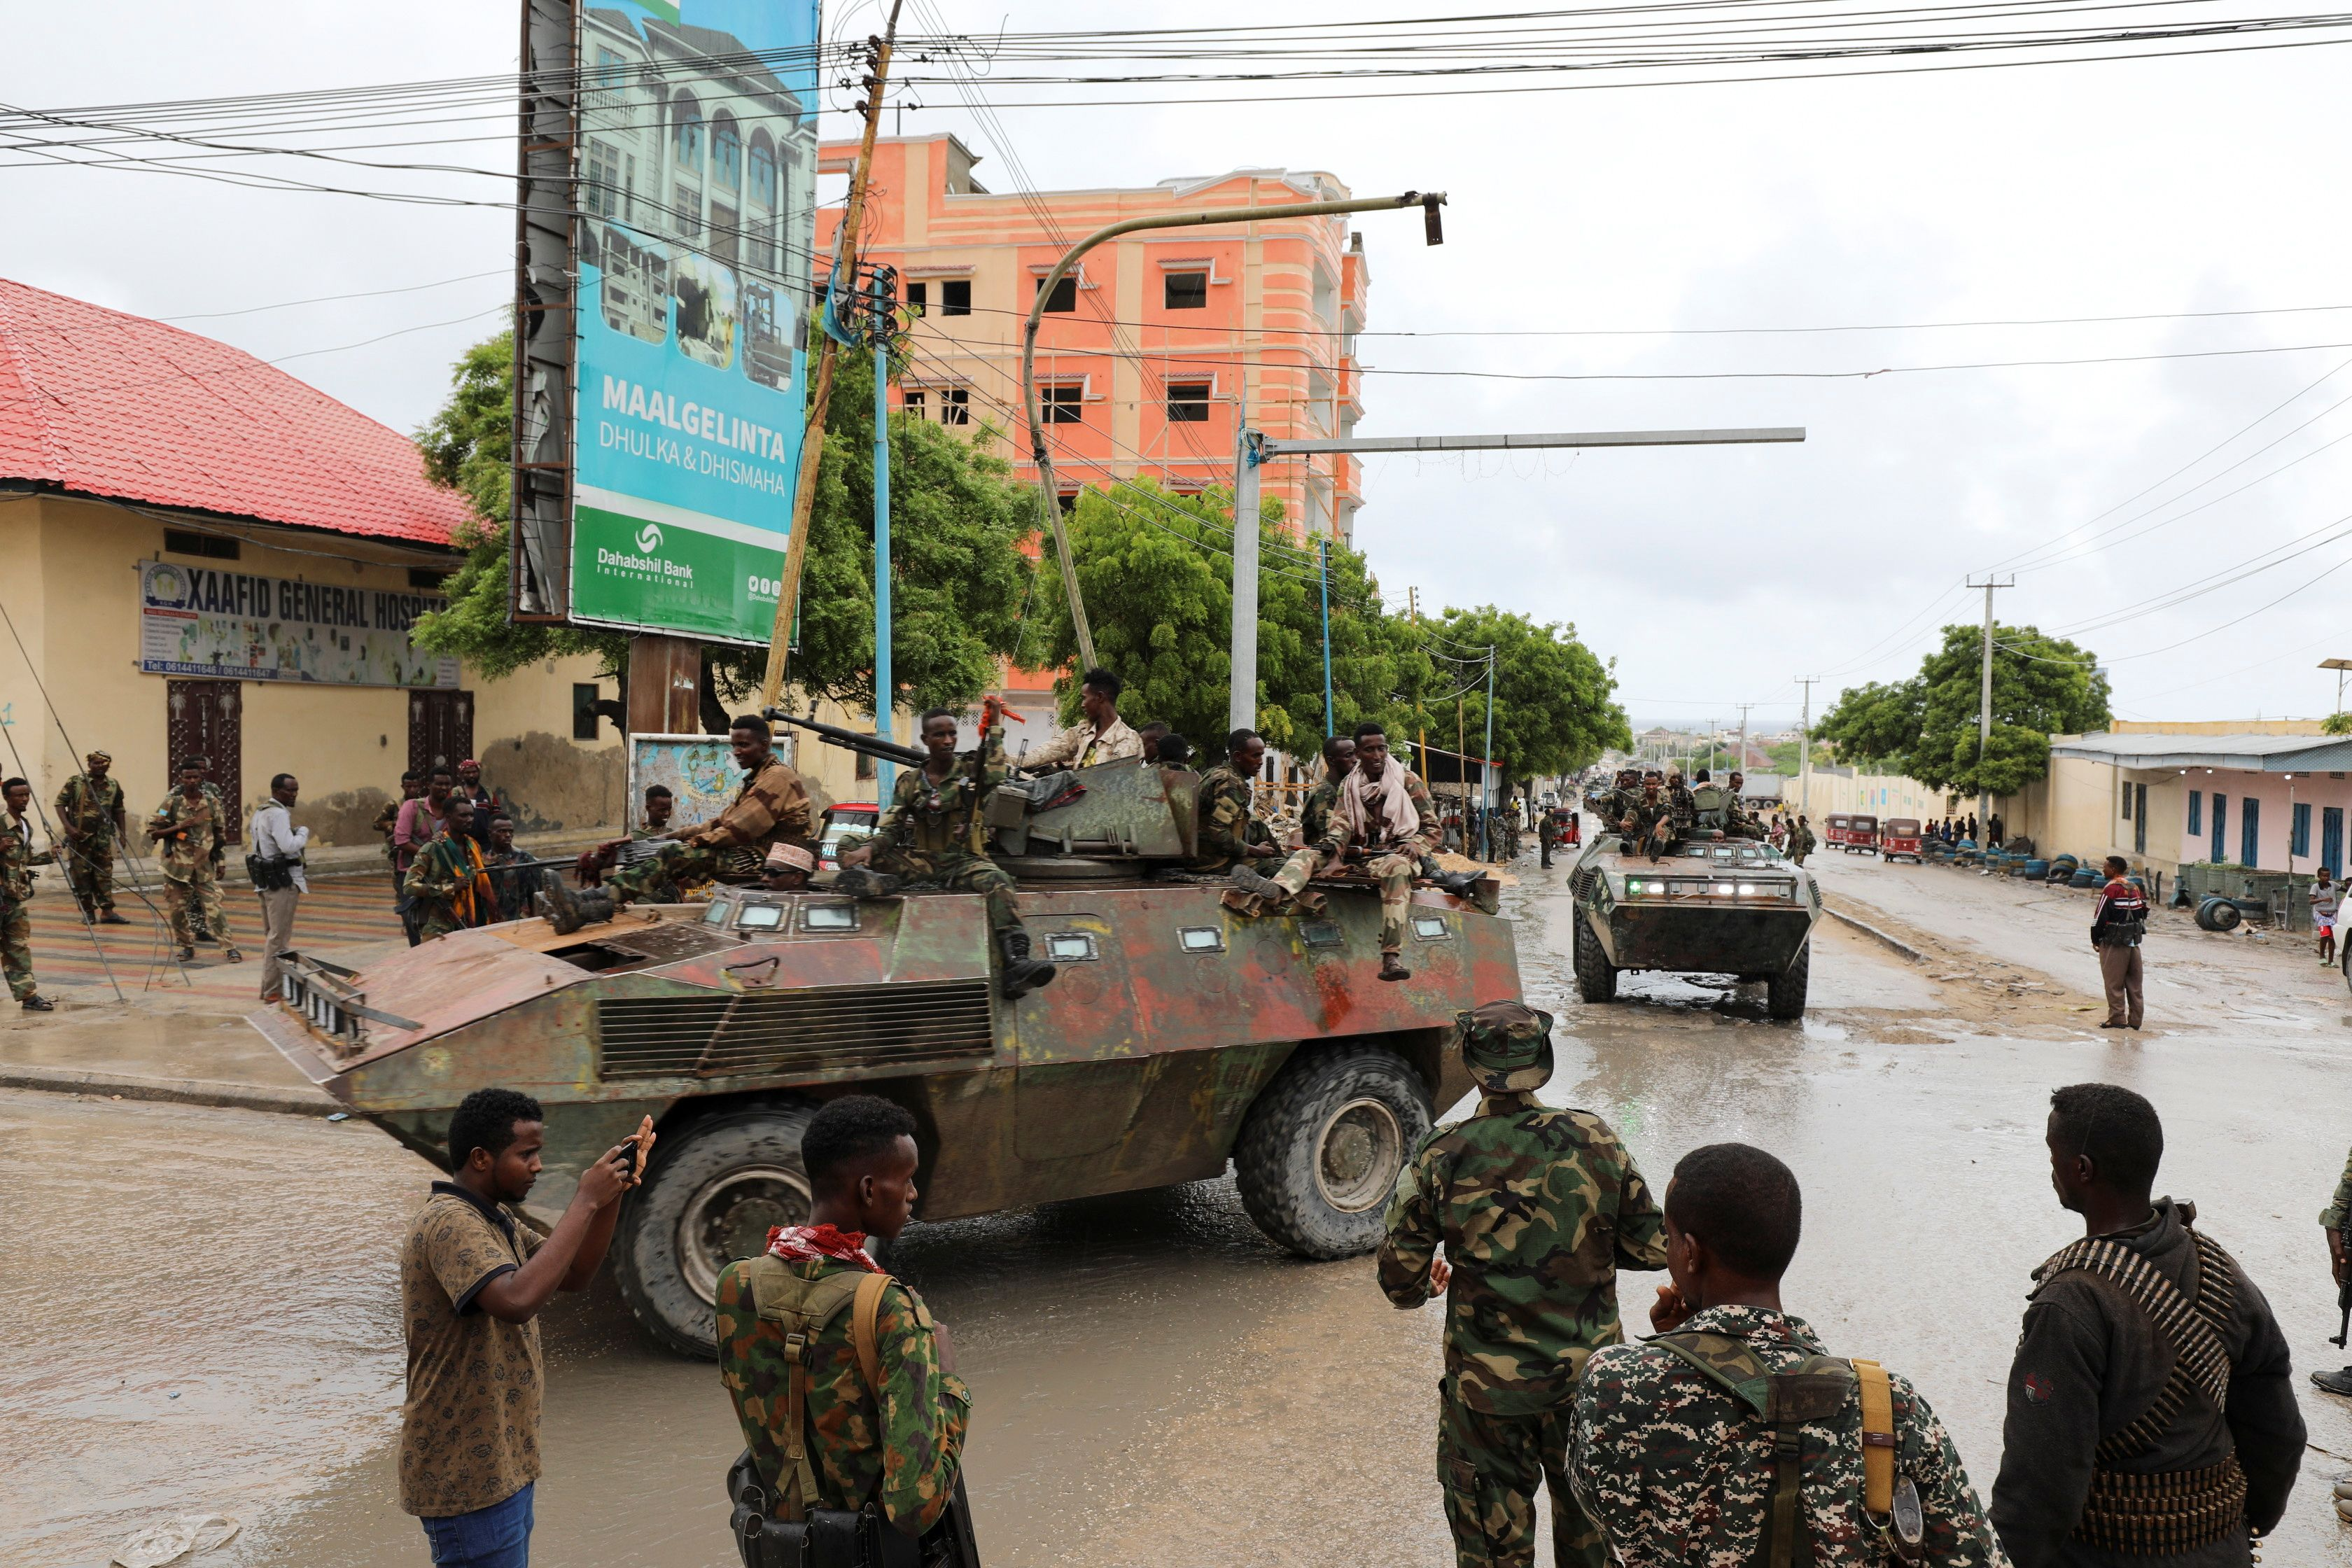 Members of Somali National Army (SNA), who back the opposition, prepare to move to their barracks after reaching an agreement with the prime minister following clashes over the tenure of the president, in Mogadishu, Somalia May 7, 2021. REUTERS/Feisal Omar